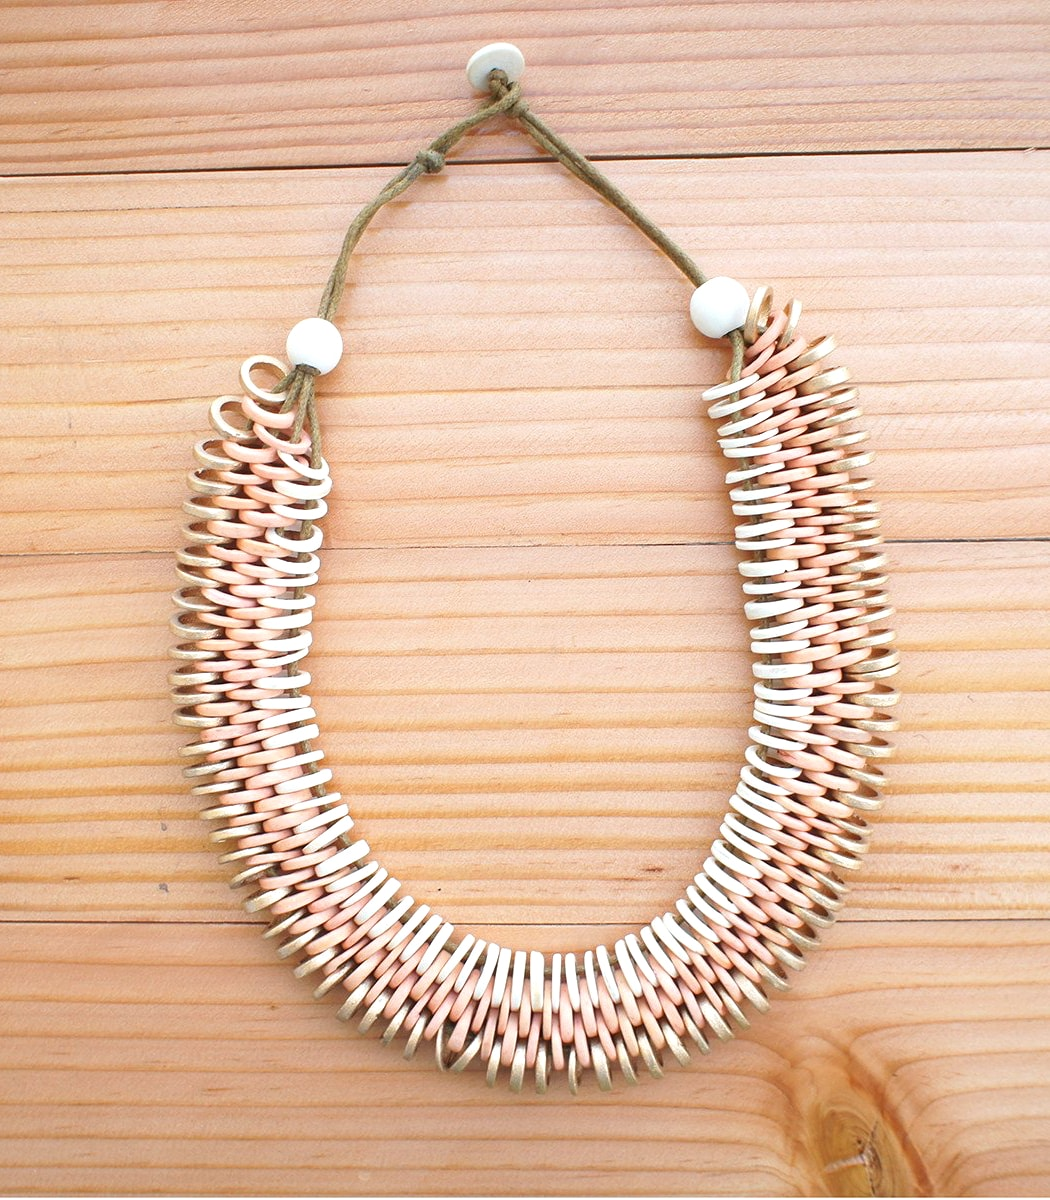 Dreamweaver Coconut Necklace - Island Girl